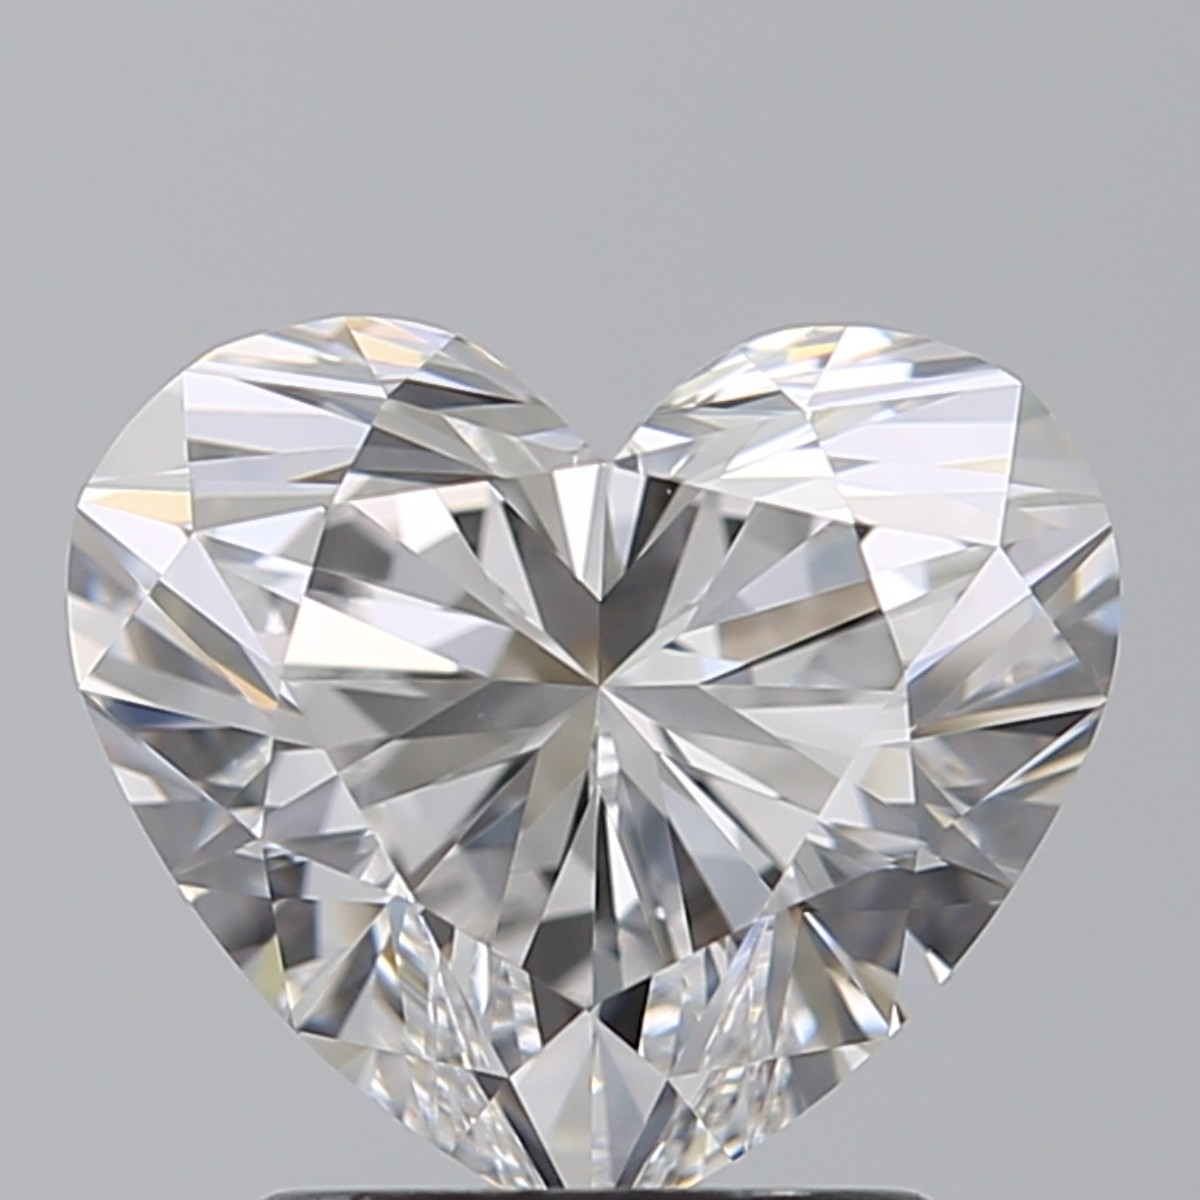 2.02 Carat Heart Diamond (E/VS1)